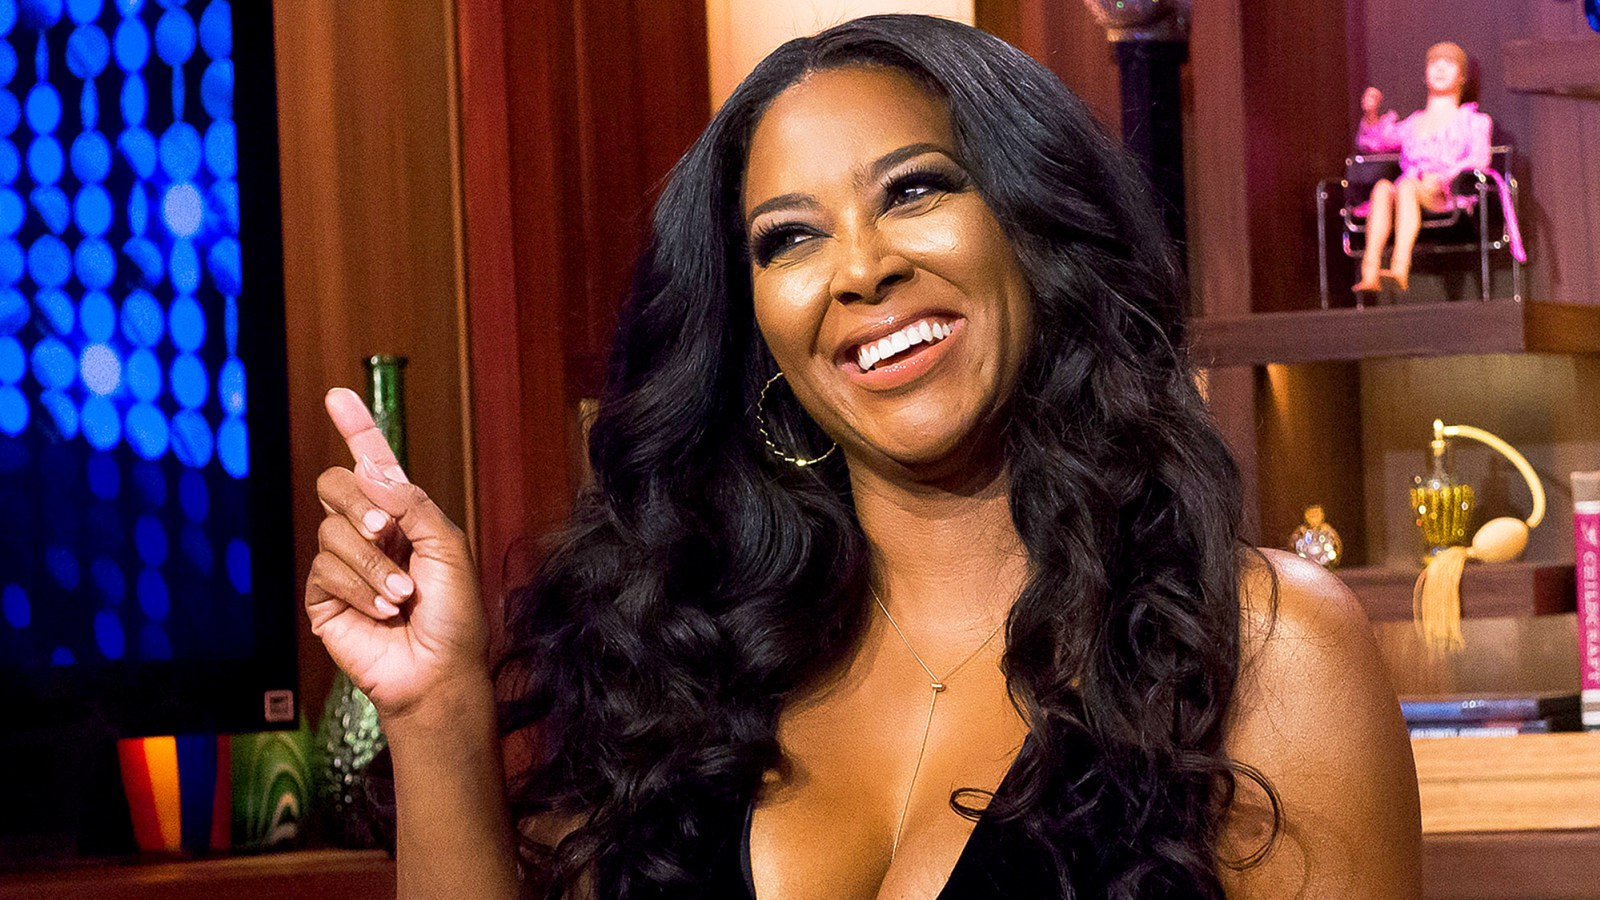 Kenya Moore Looks Gorgeous In Pink And Fans Are Here For Her Look And Message